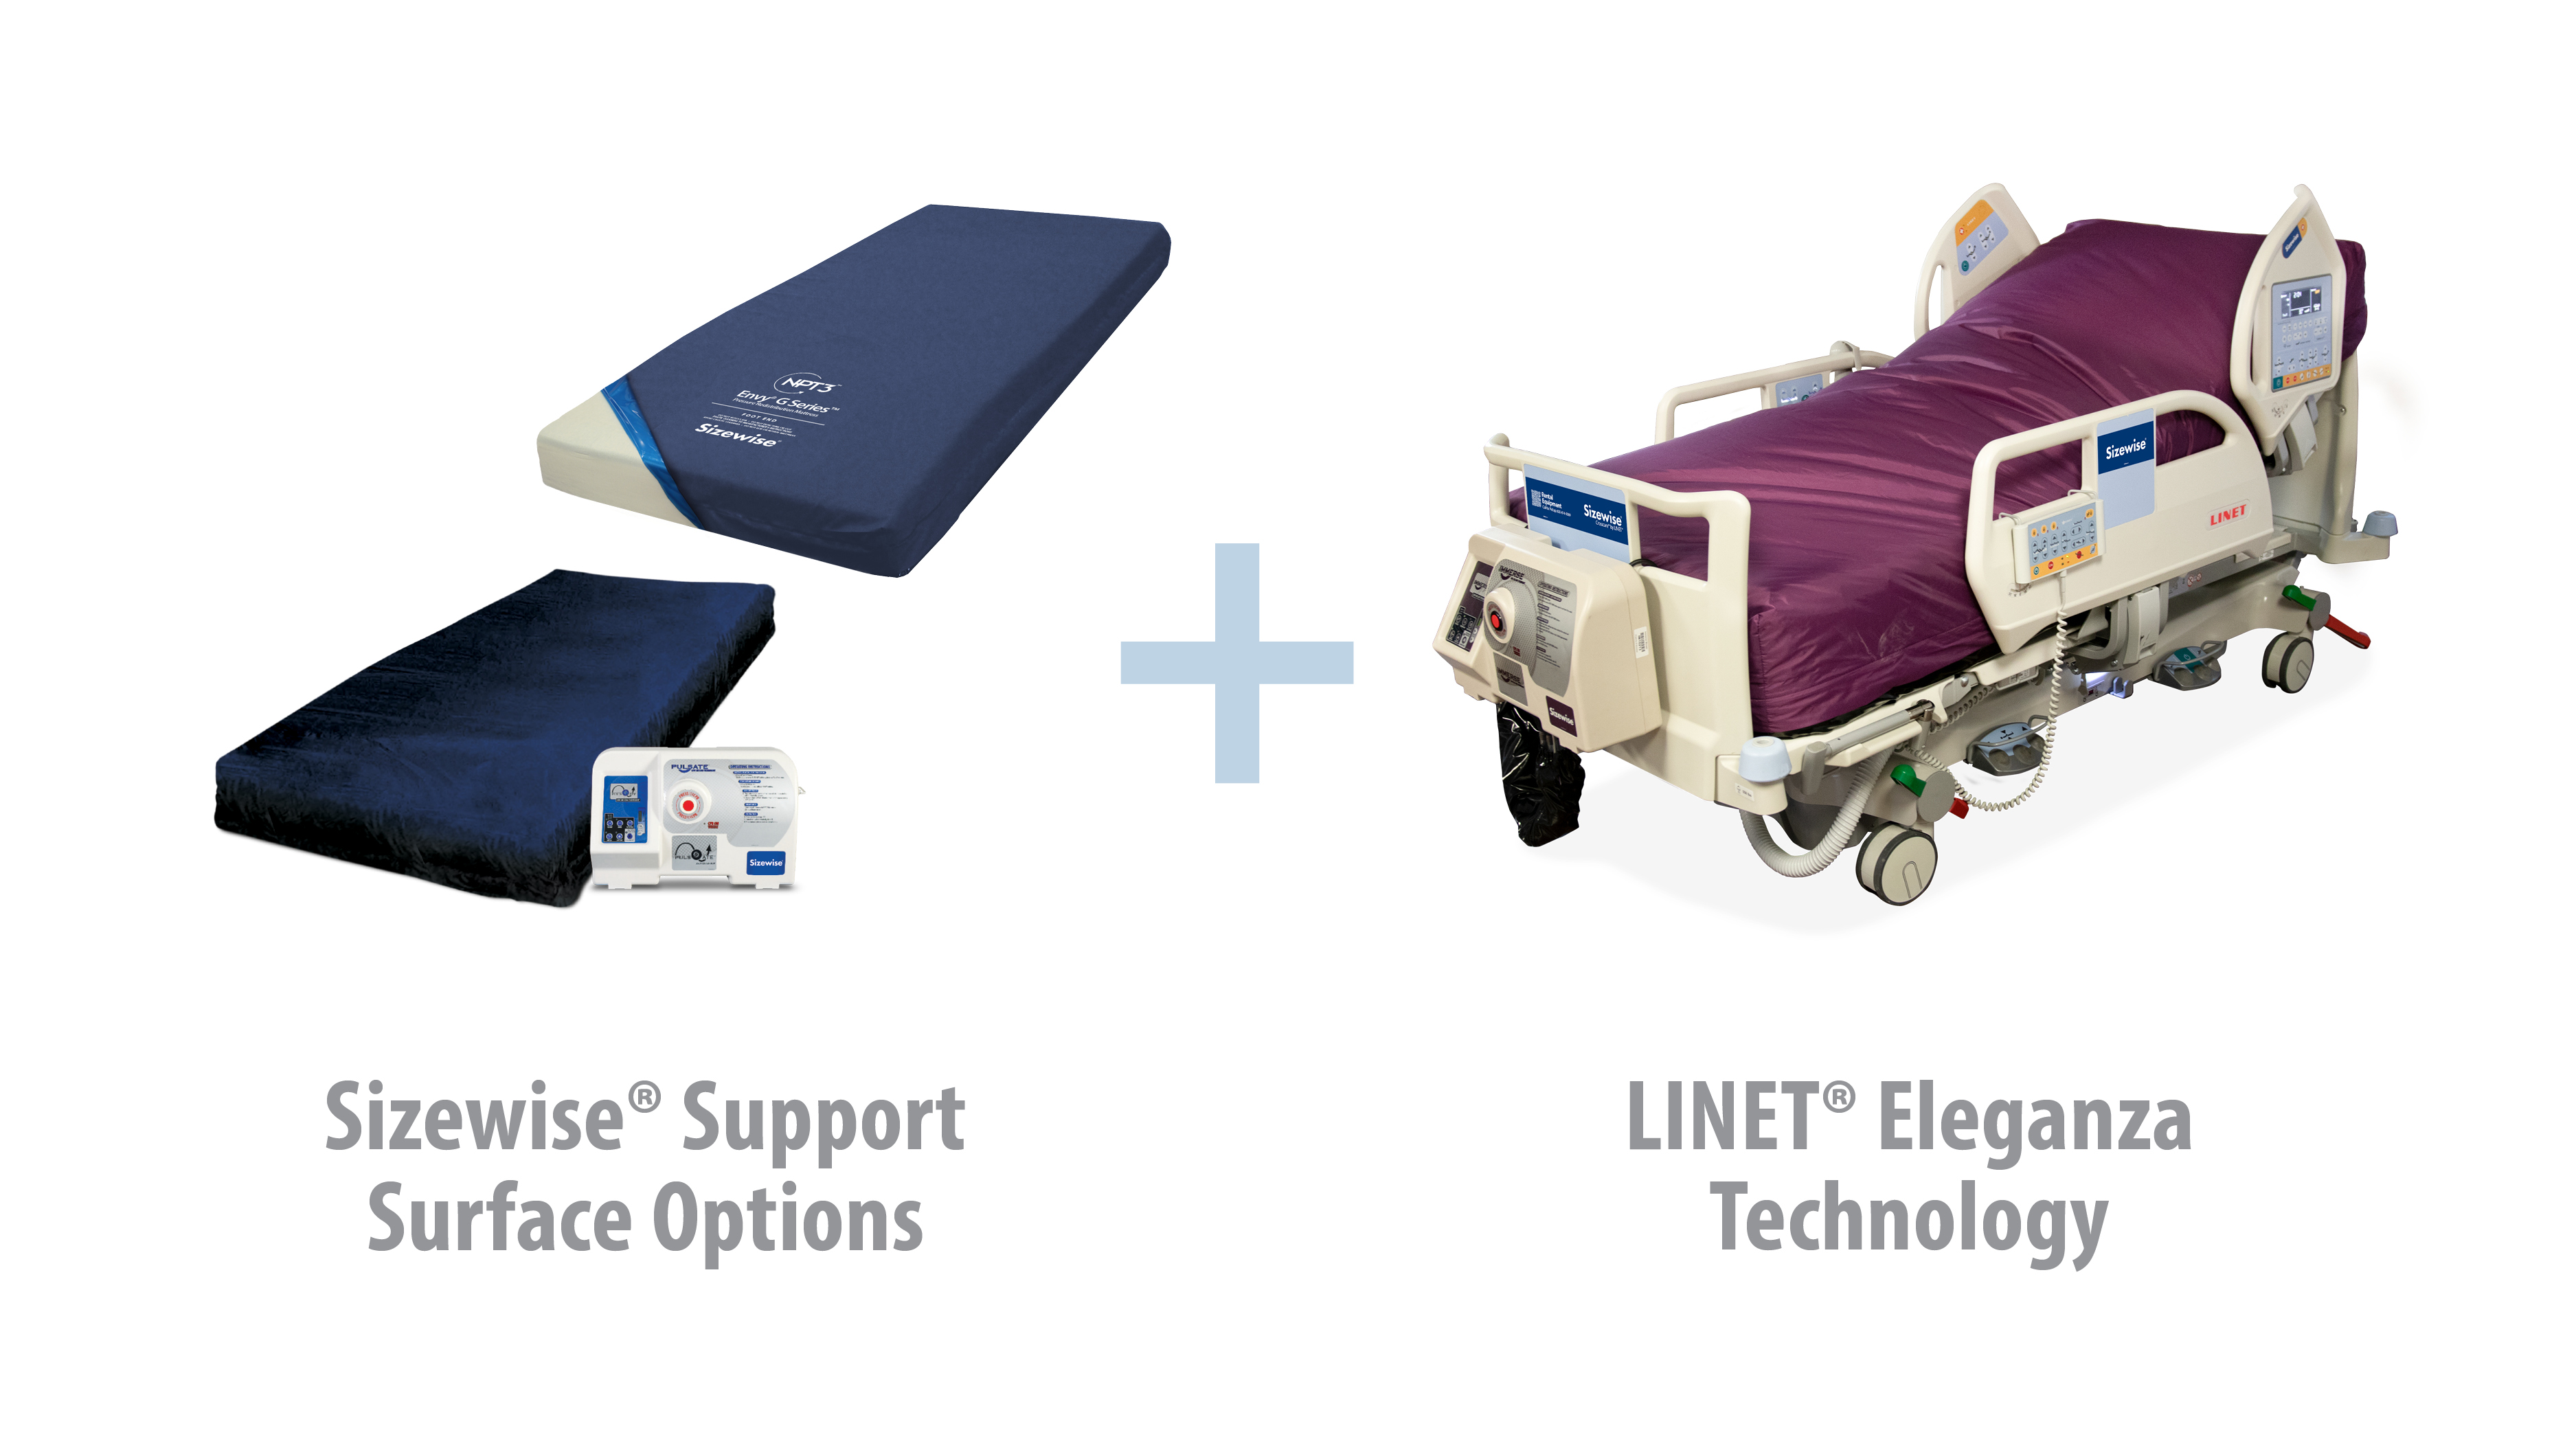 A cross-manufacturing agreement provides the best of both worlds: Sizewise® surface options and LINET® bed frames.